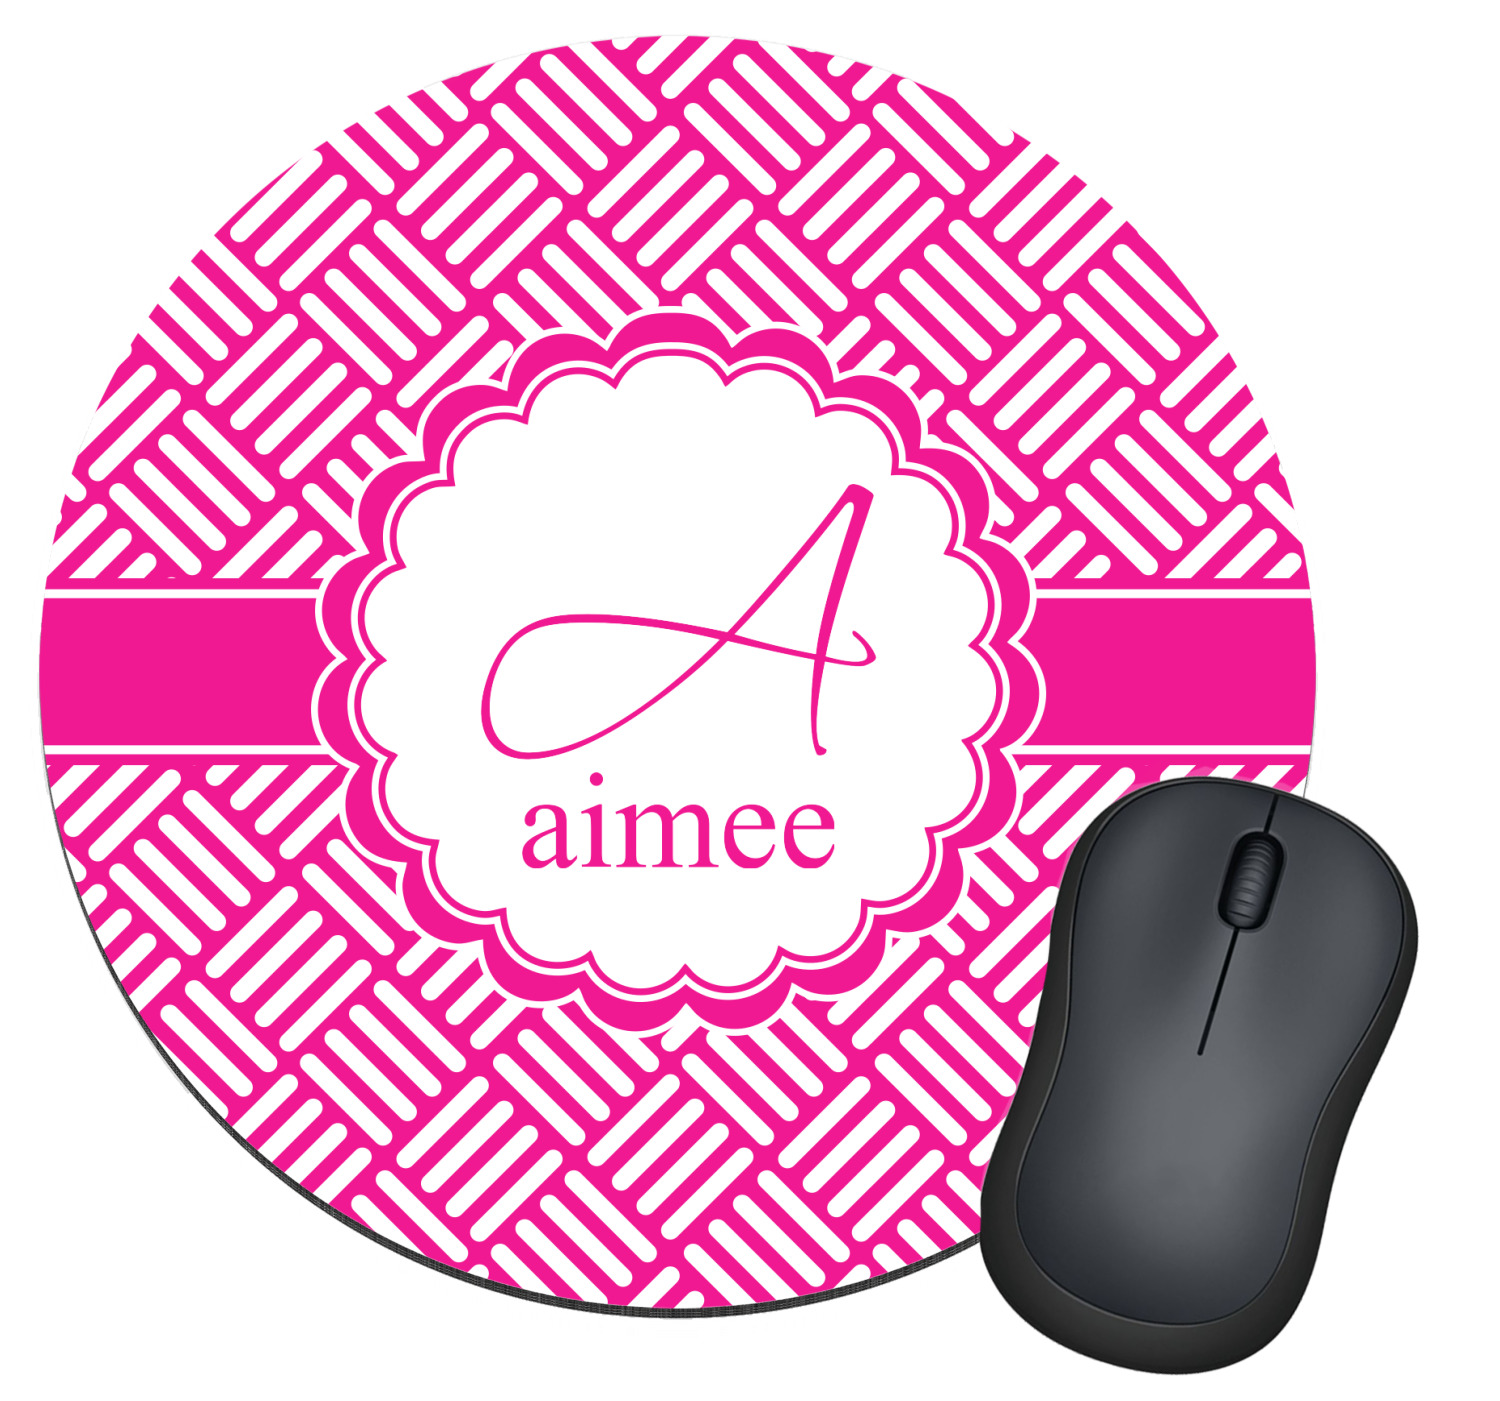 Hashtag round mouse pad personalized youcustomizeit for Office design hashtags